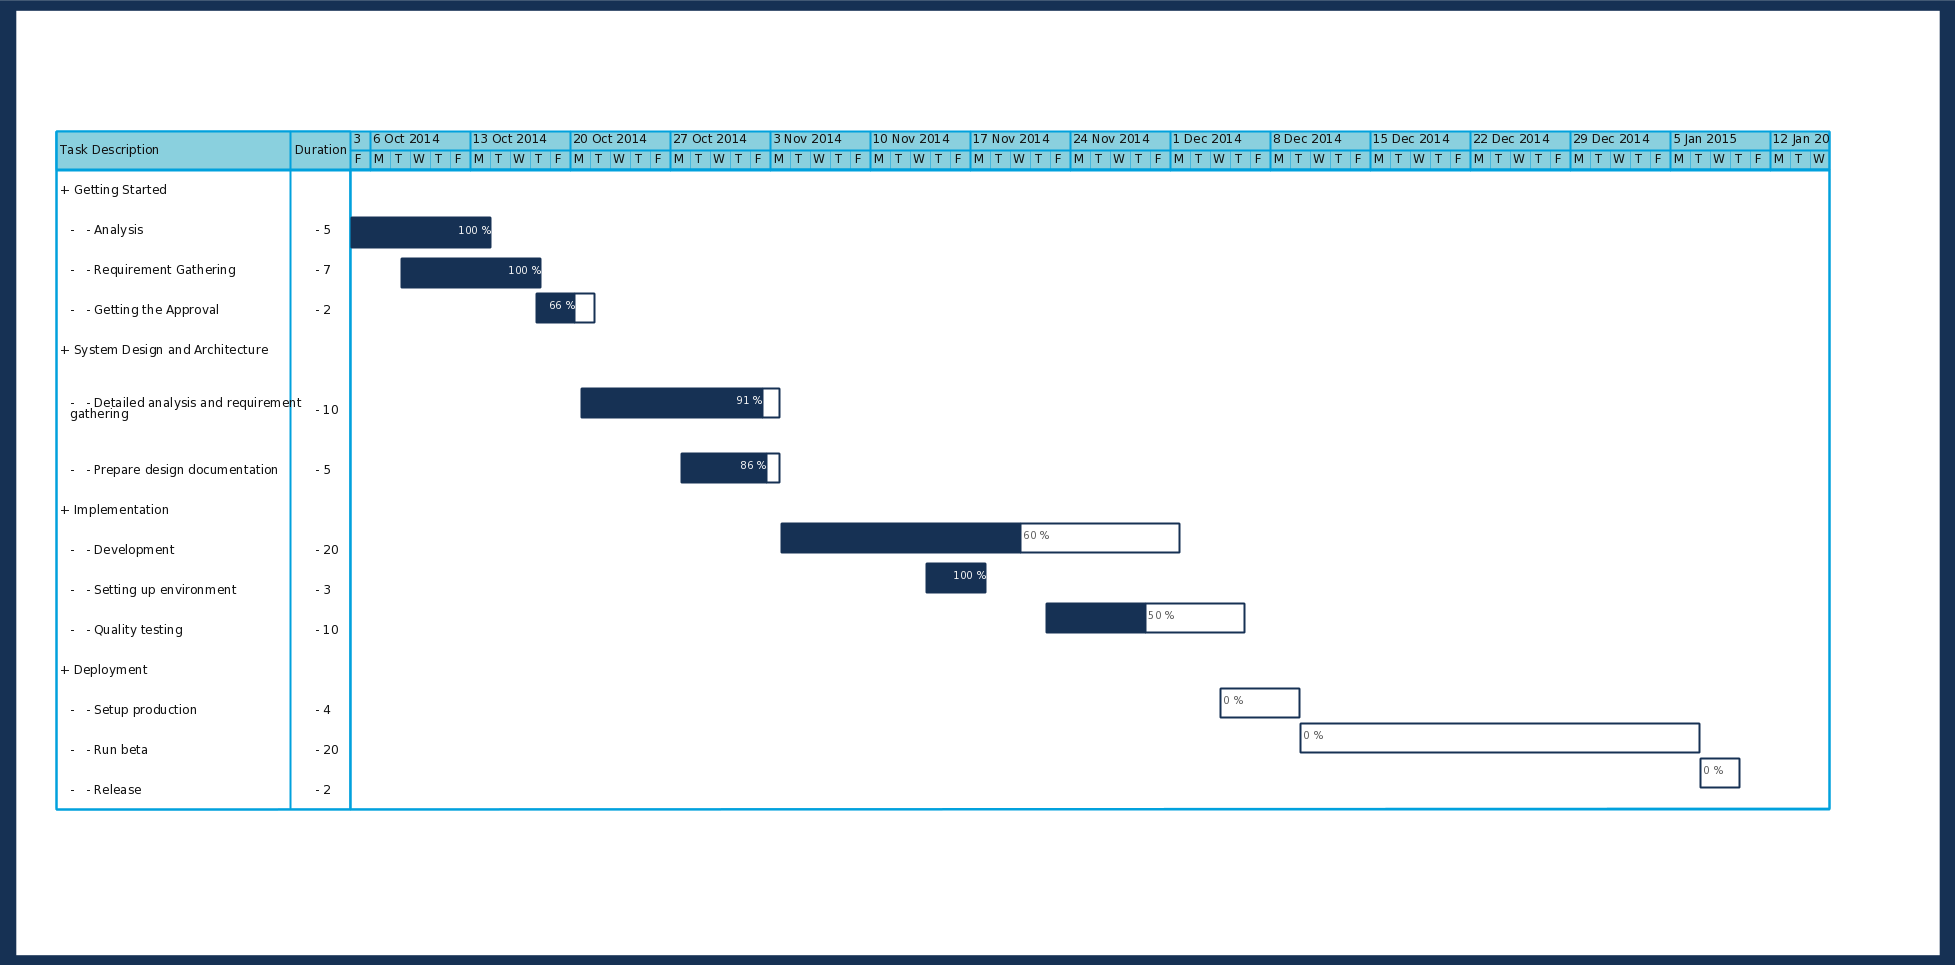 A Simple Traditional Gantt Chart That Utilizes The Creately Smart Objects